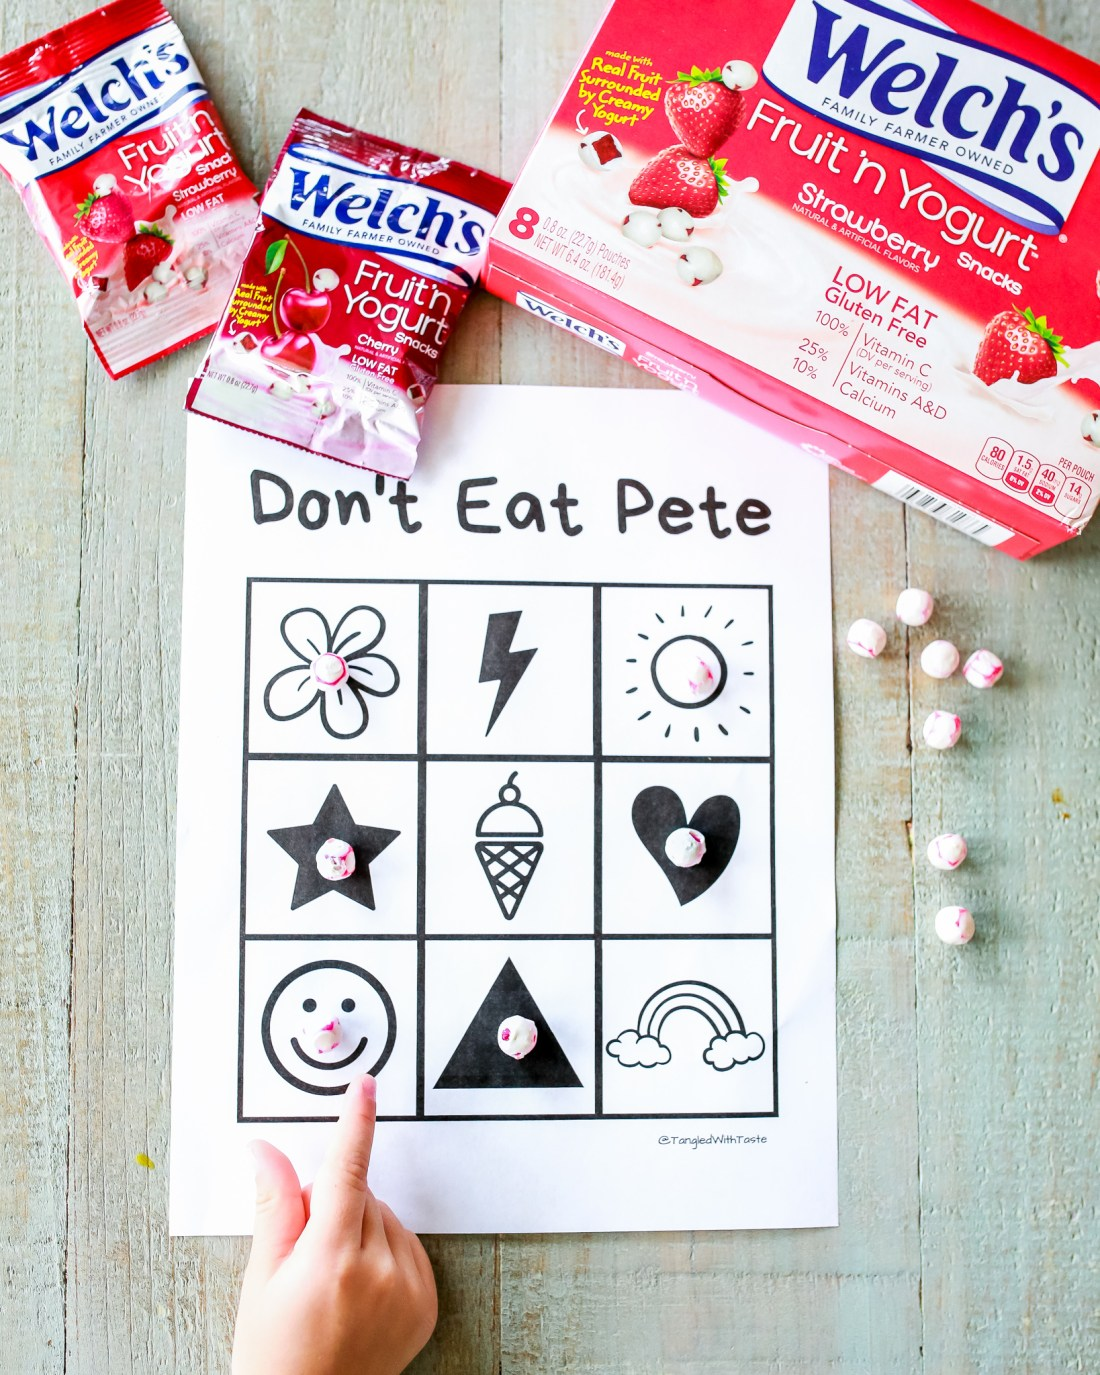 3 free printable for Don't Eat Pete game!